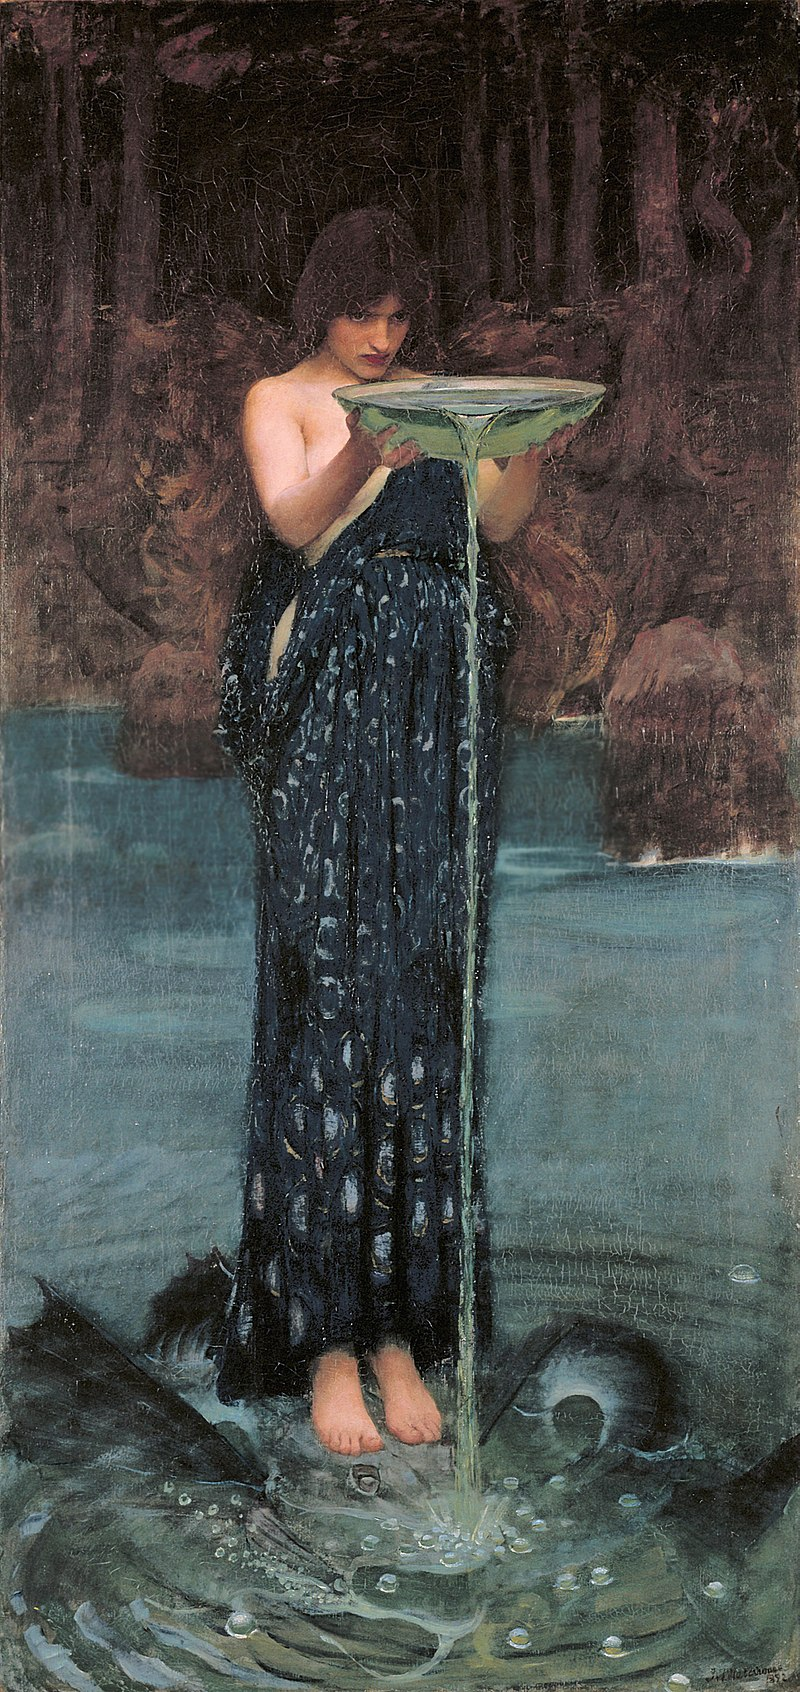 800px-Circe_Invidiosa_-_John_William_Waterhouse